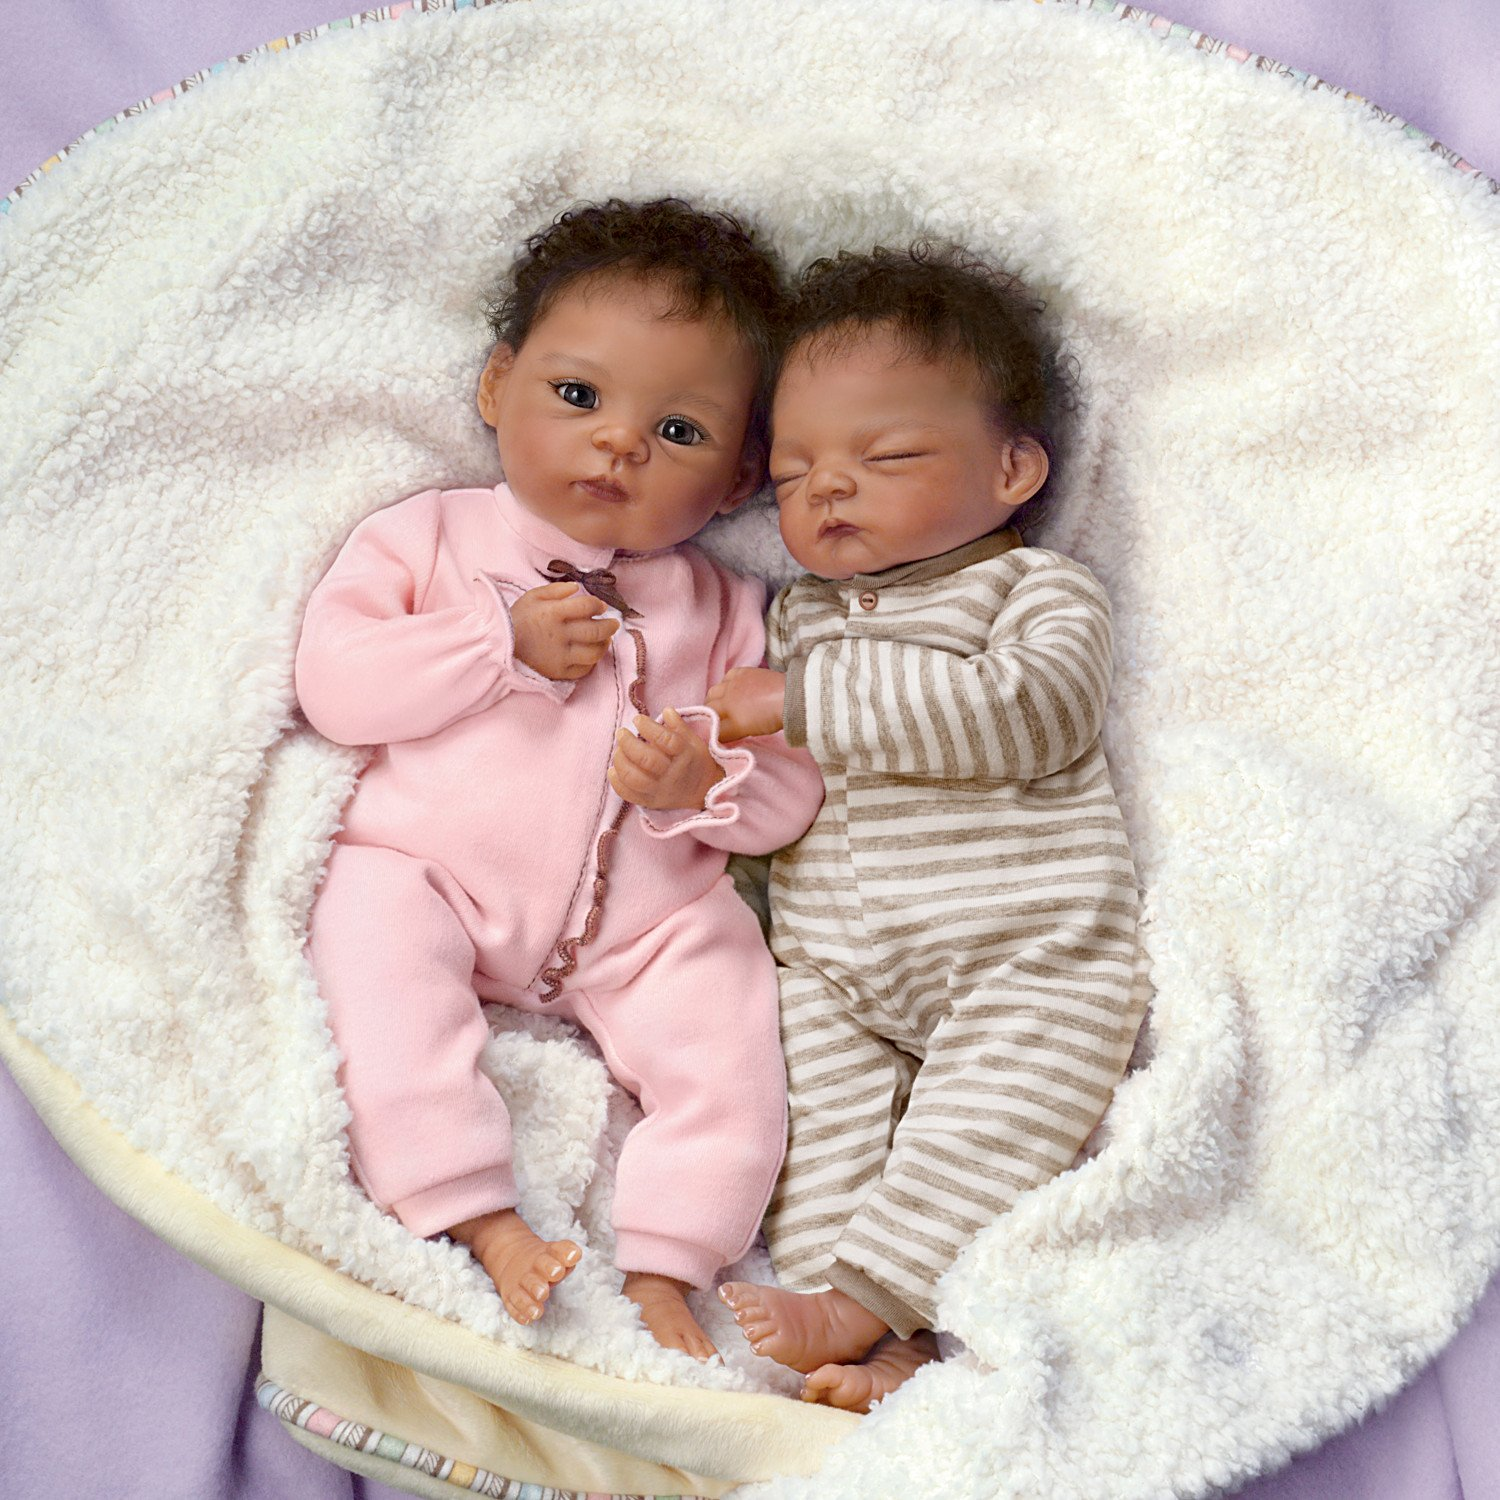 Amazon com jada and jayden twins in custom bunting so truly real lifelike realistic newborn african american baby dolls 13 inches by the ashton drake